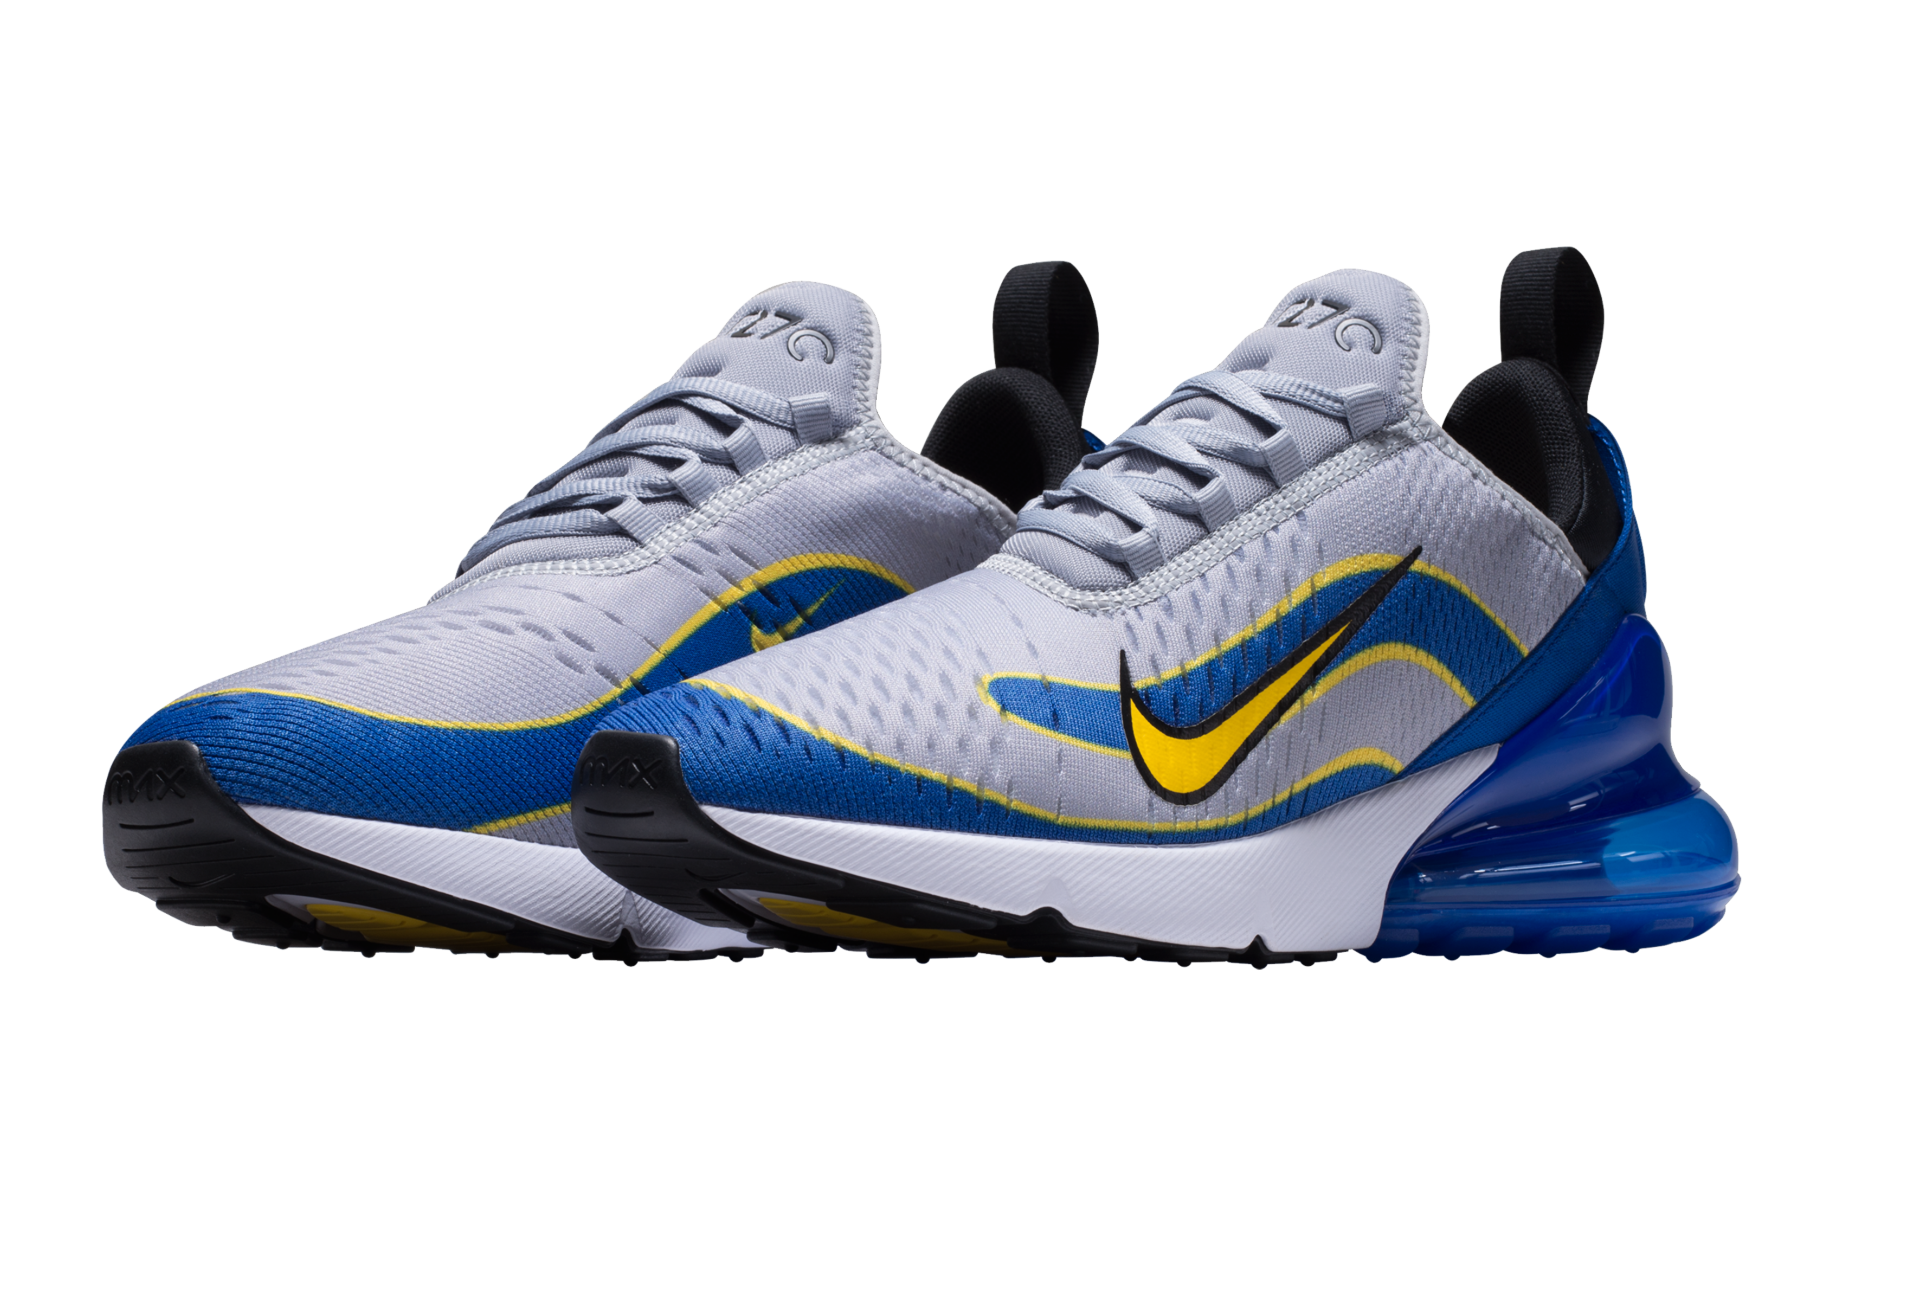 Nike Just Dropped an R9 Inspired Mercurial x Air Max 270